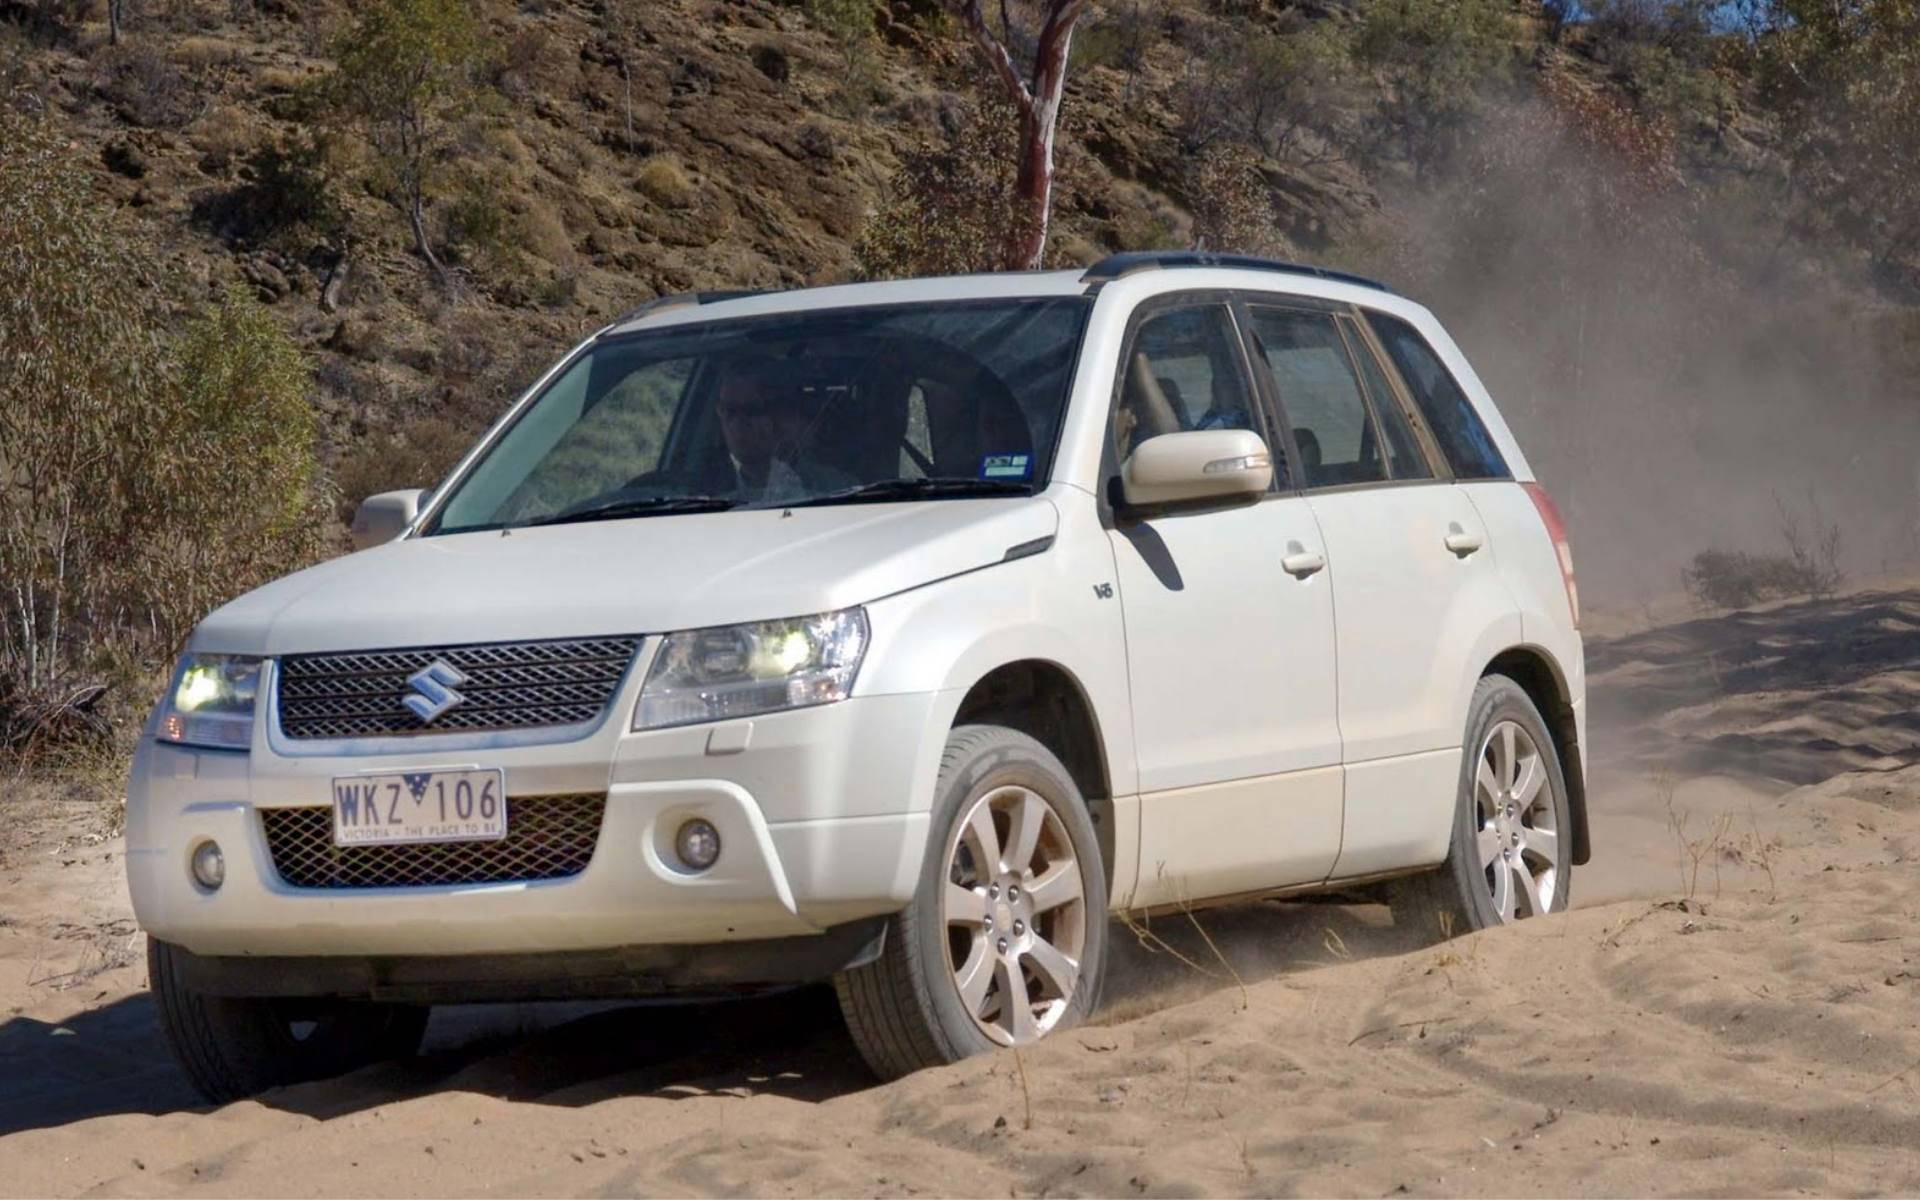 Suzuki Grand Vitara Off Road Wallpapers